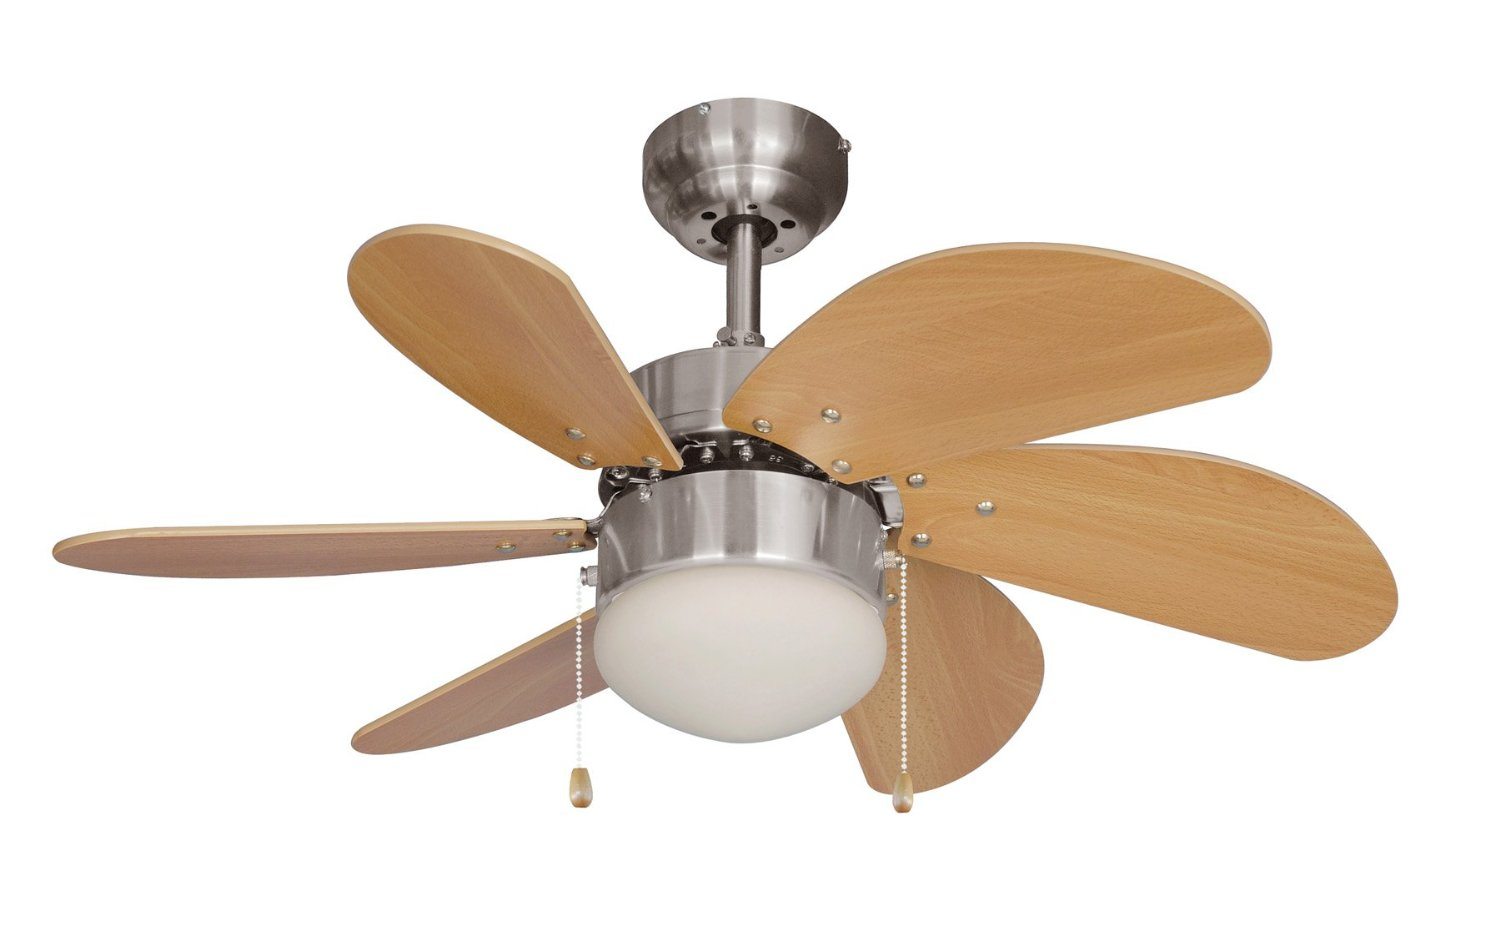 wooden-ceiling-fans-photo-12